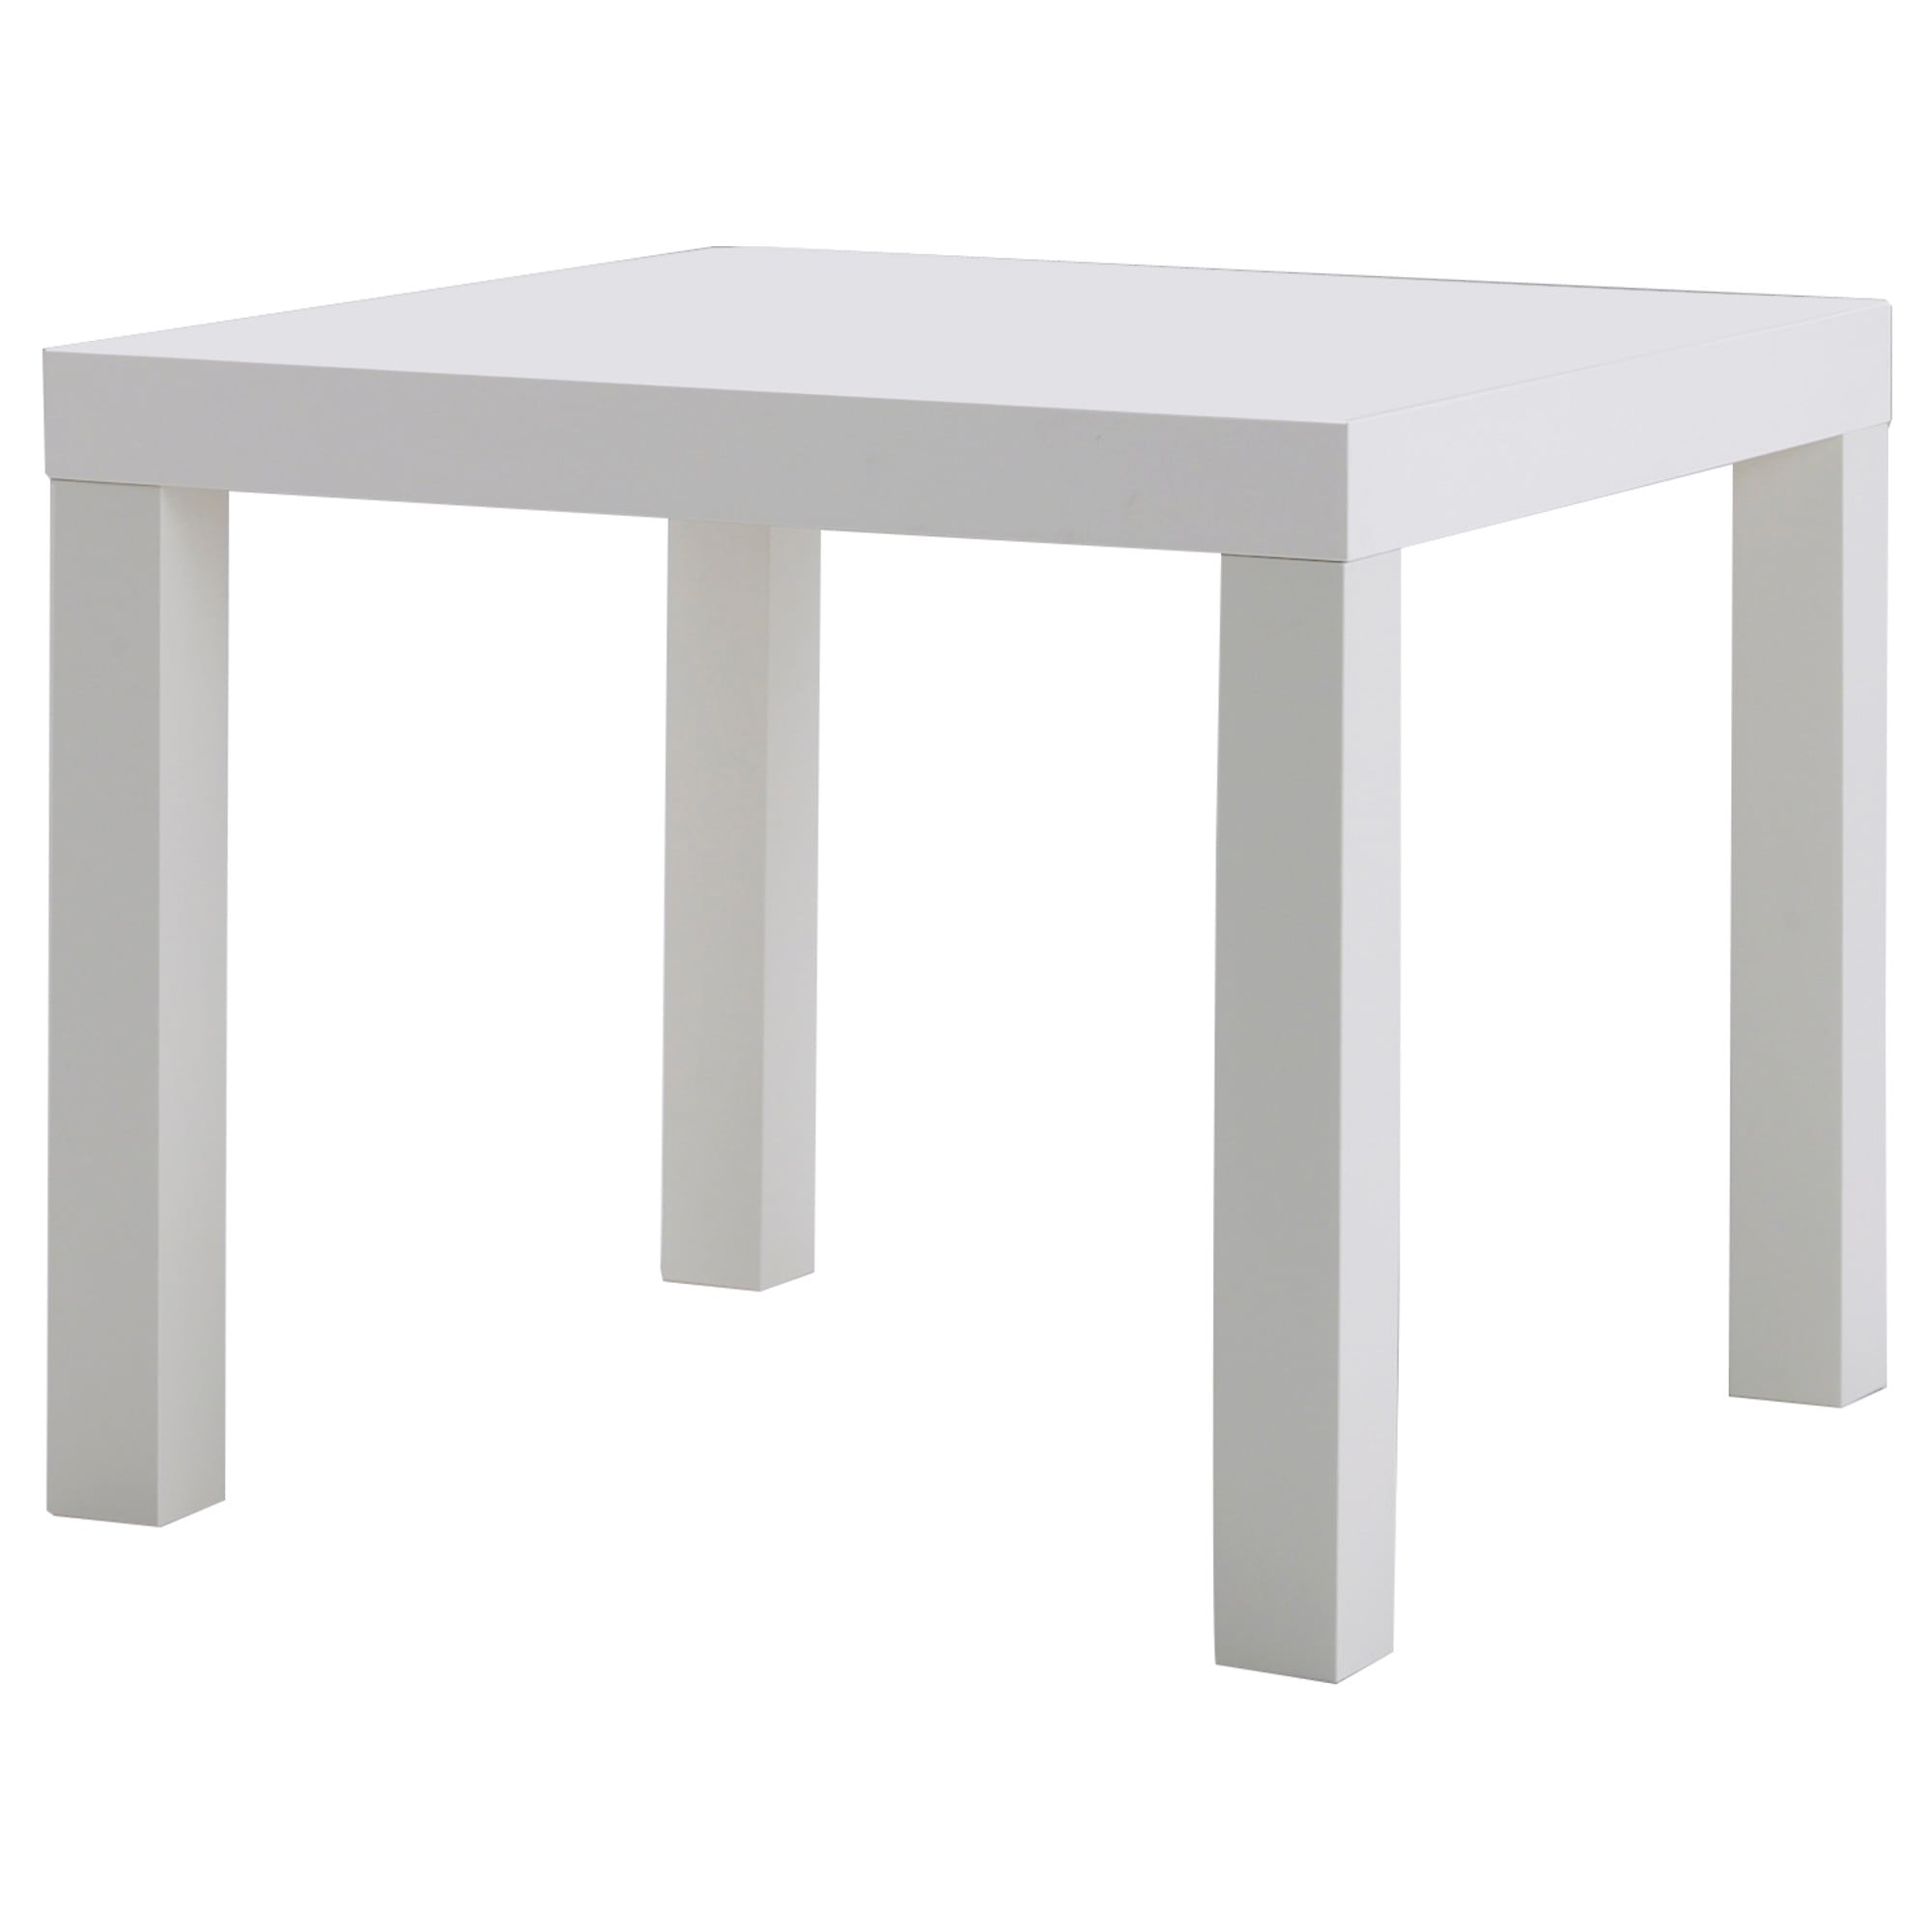 White side table - White Side Table 0